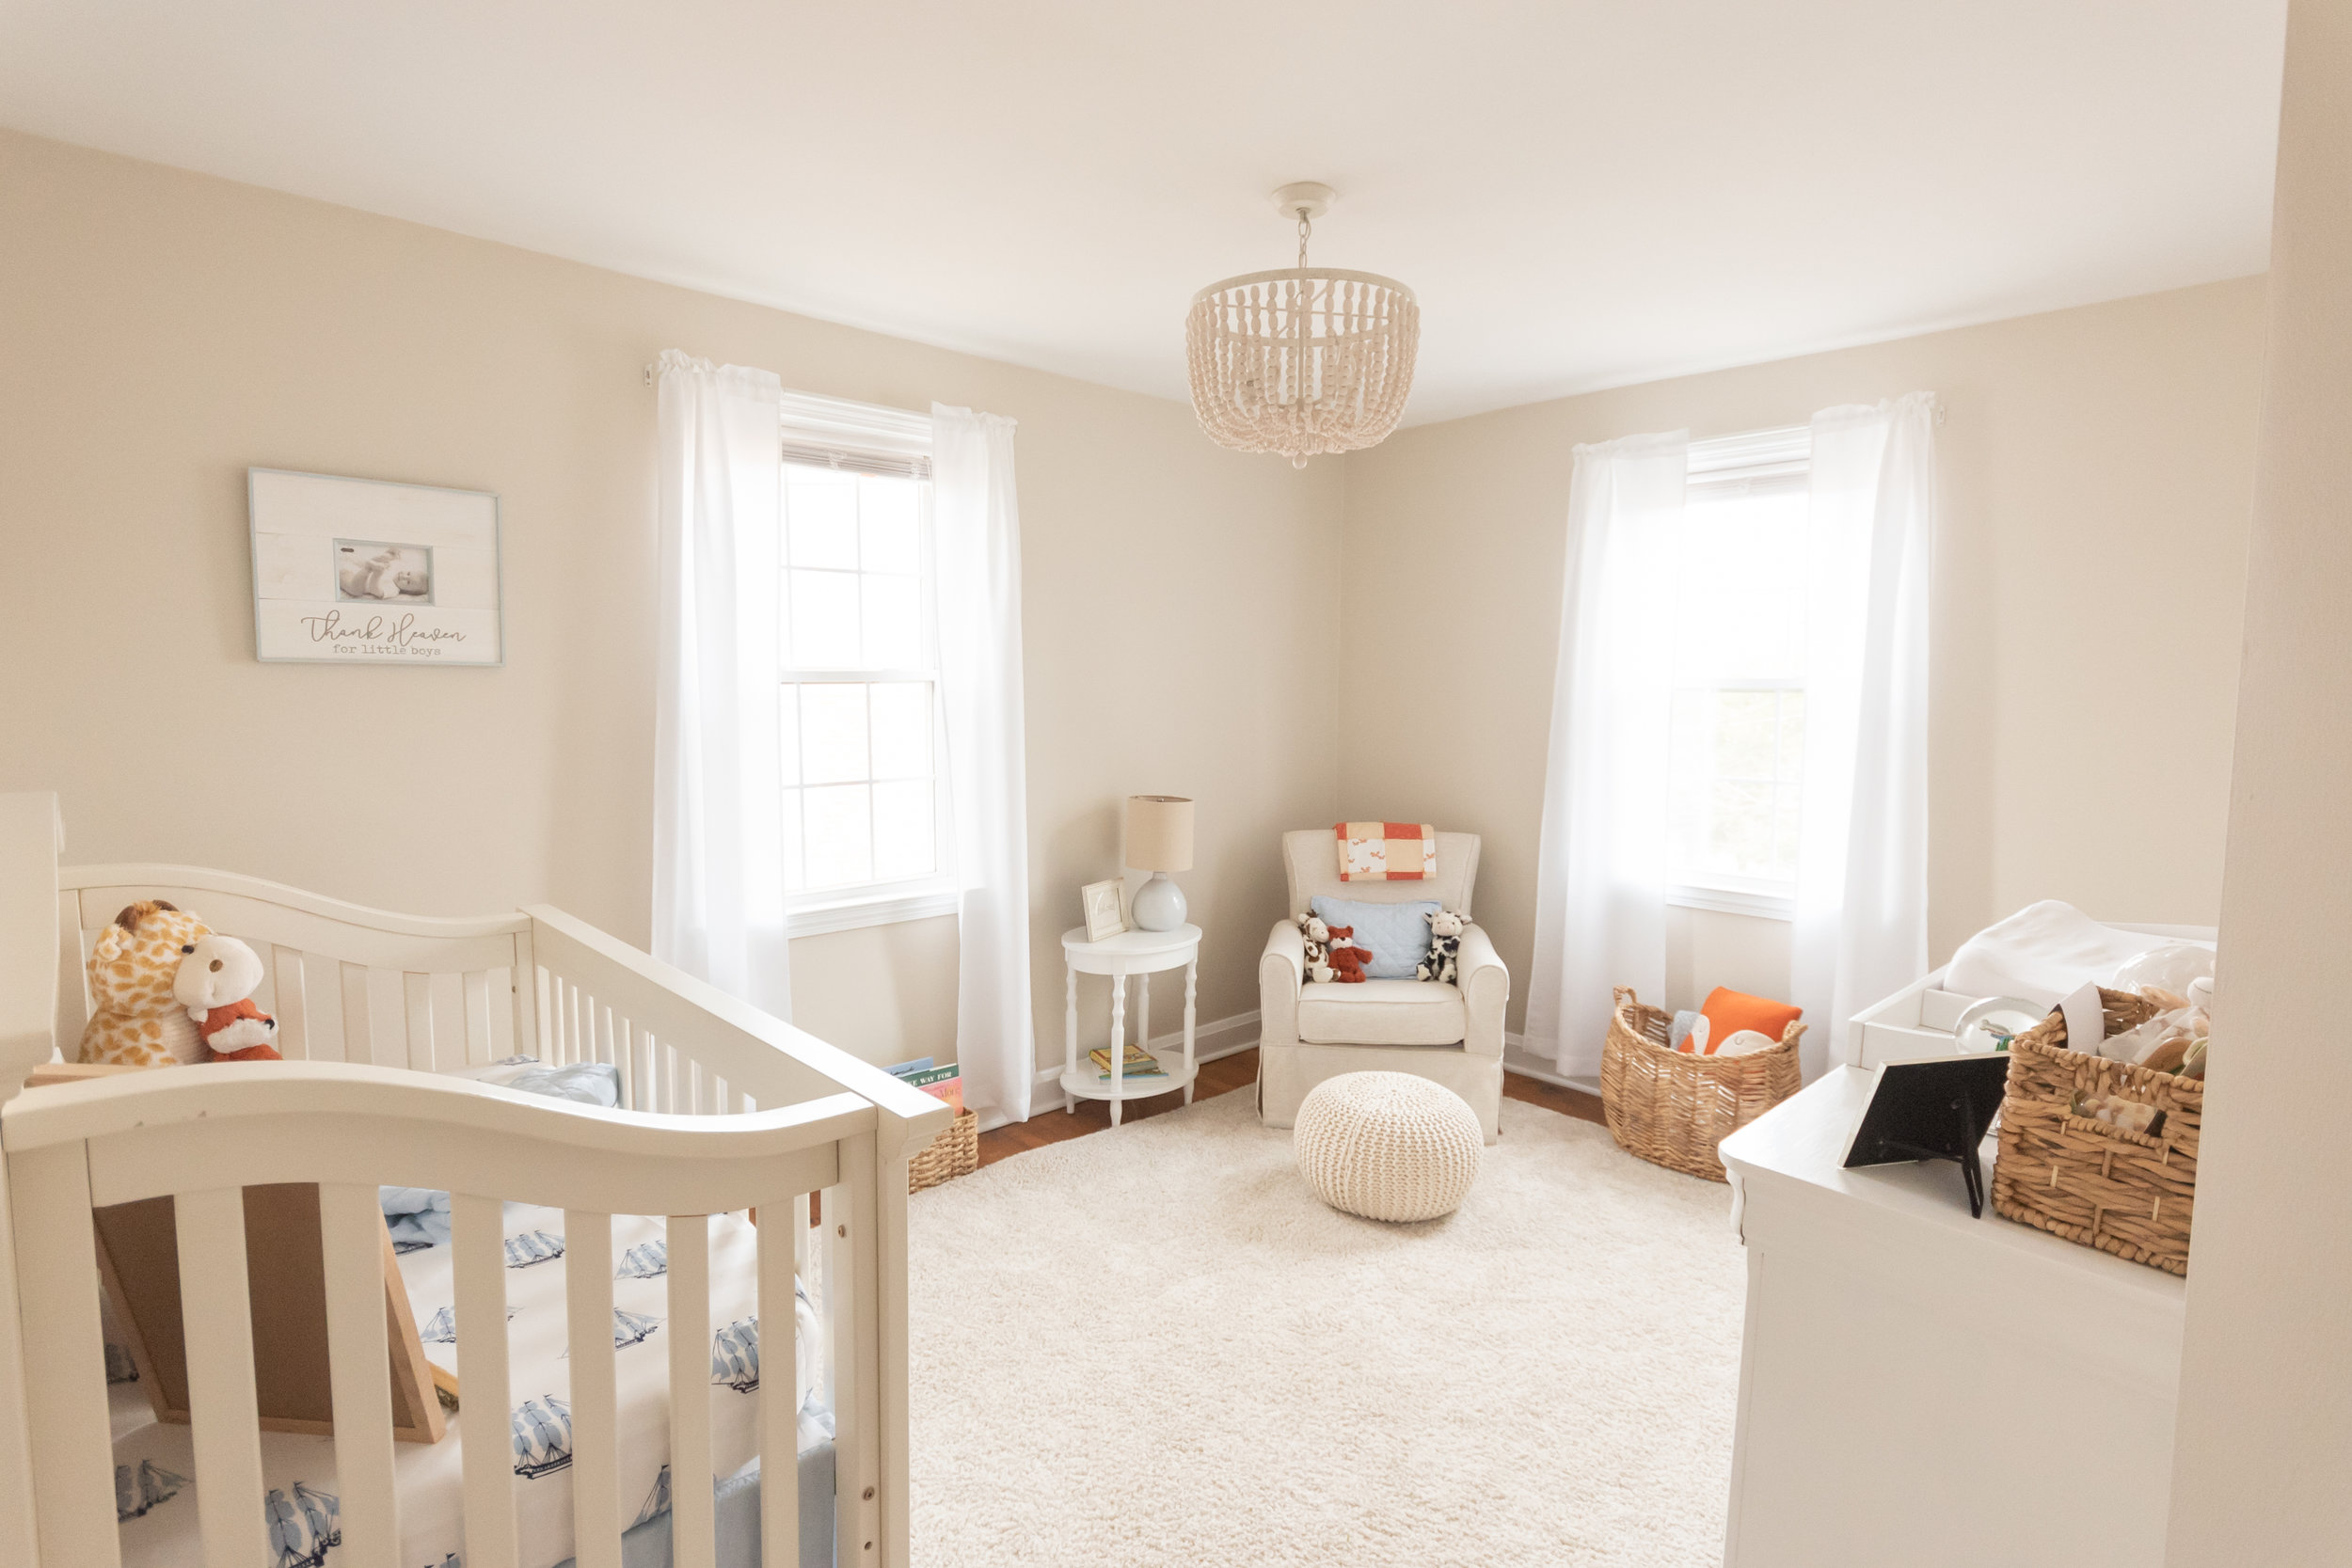 Tricia worked so hard on perfecting every detail of this nursery. I loved watching it be completed! SO much love went into it!